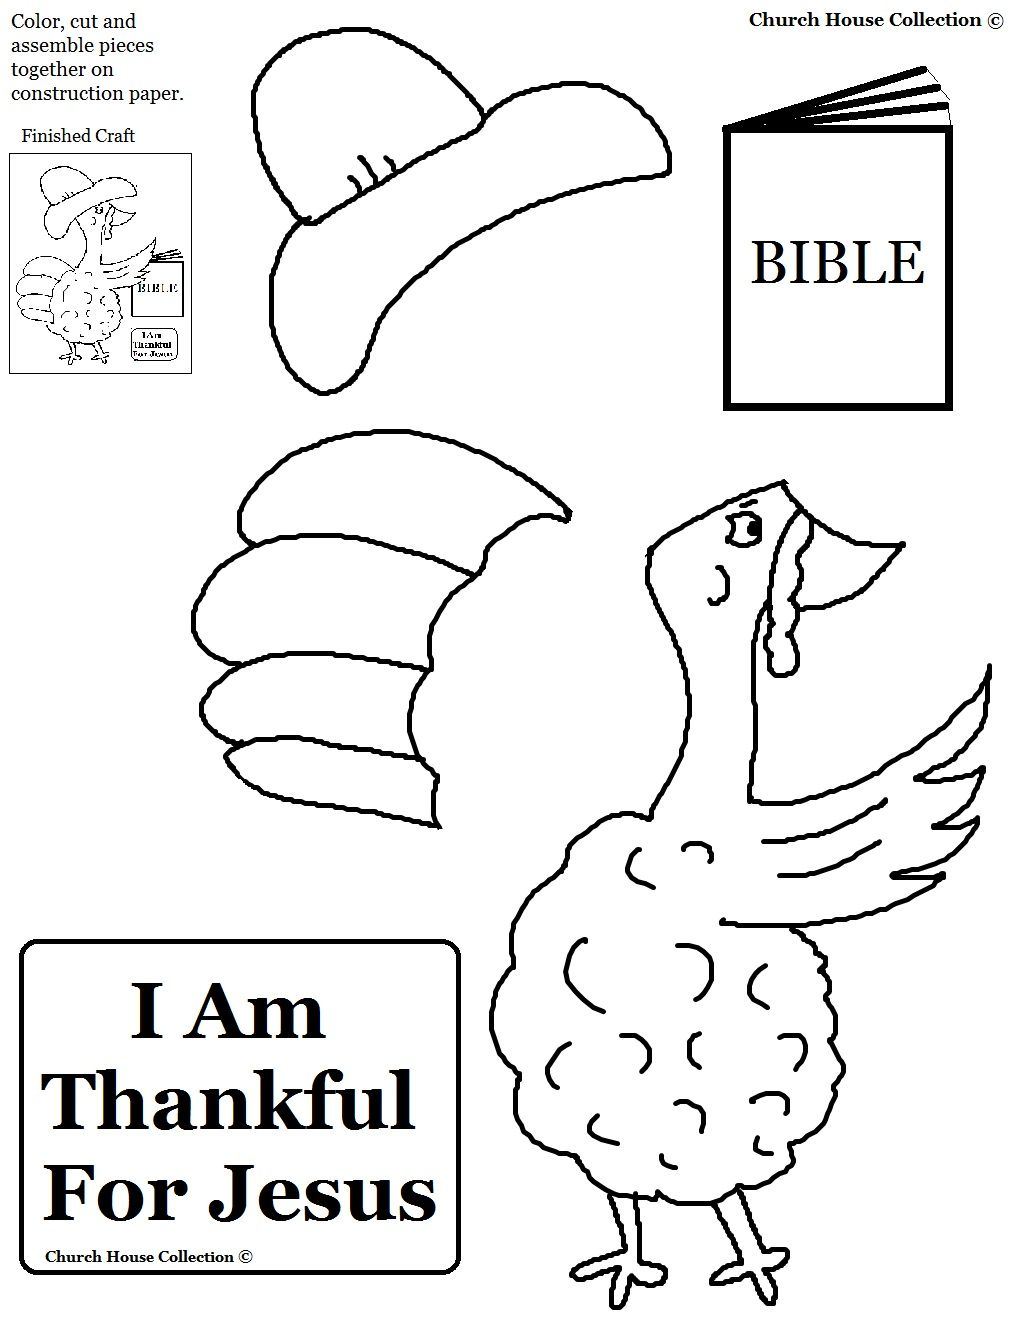 Pin By Church House Collection On Thanksgiving Sunday School Thanksgiving Sunday School Projects Sunday School Kids